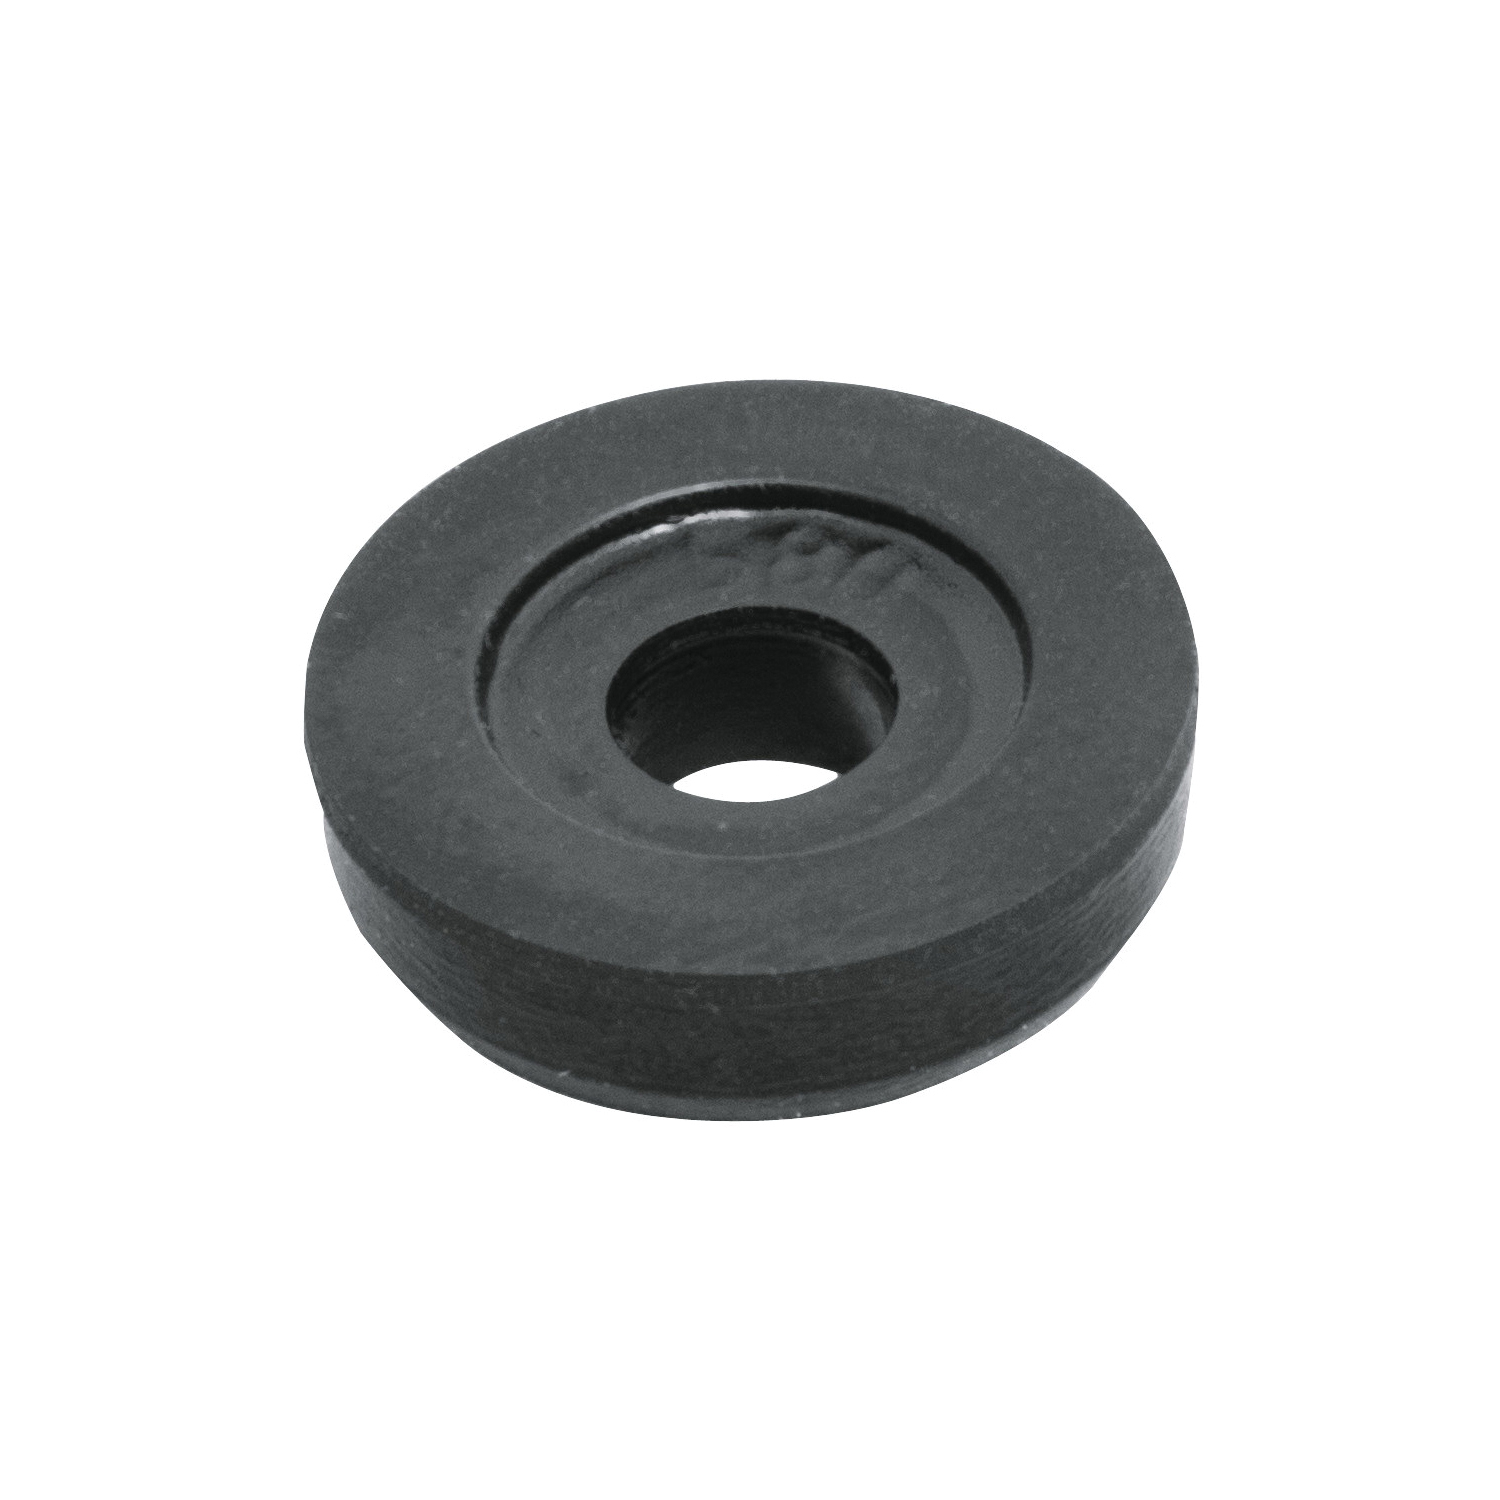 GROHE 05291000 Stem Seat Washer, For Use With 07146/07147 1/2 in Compression Cartridge, Import